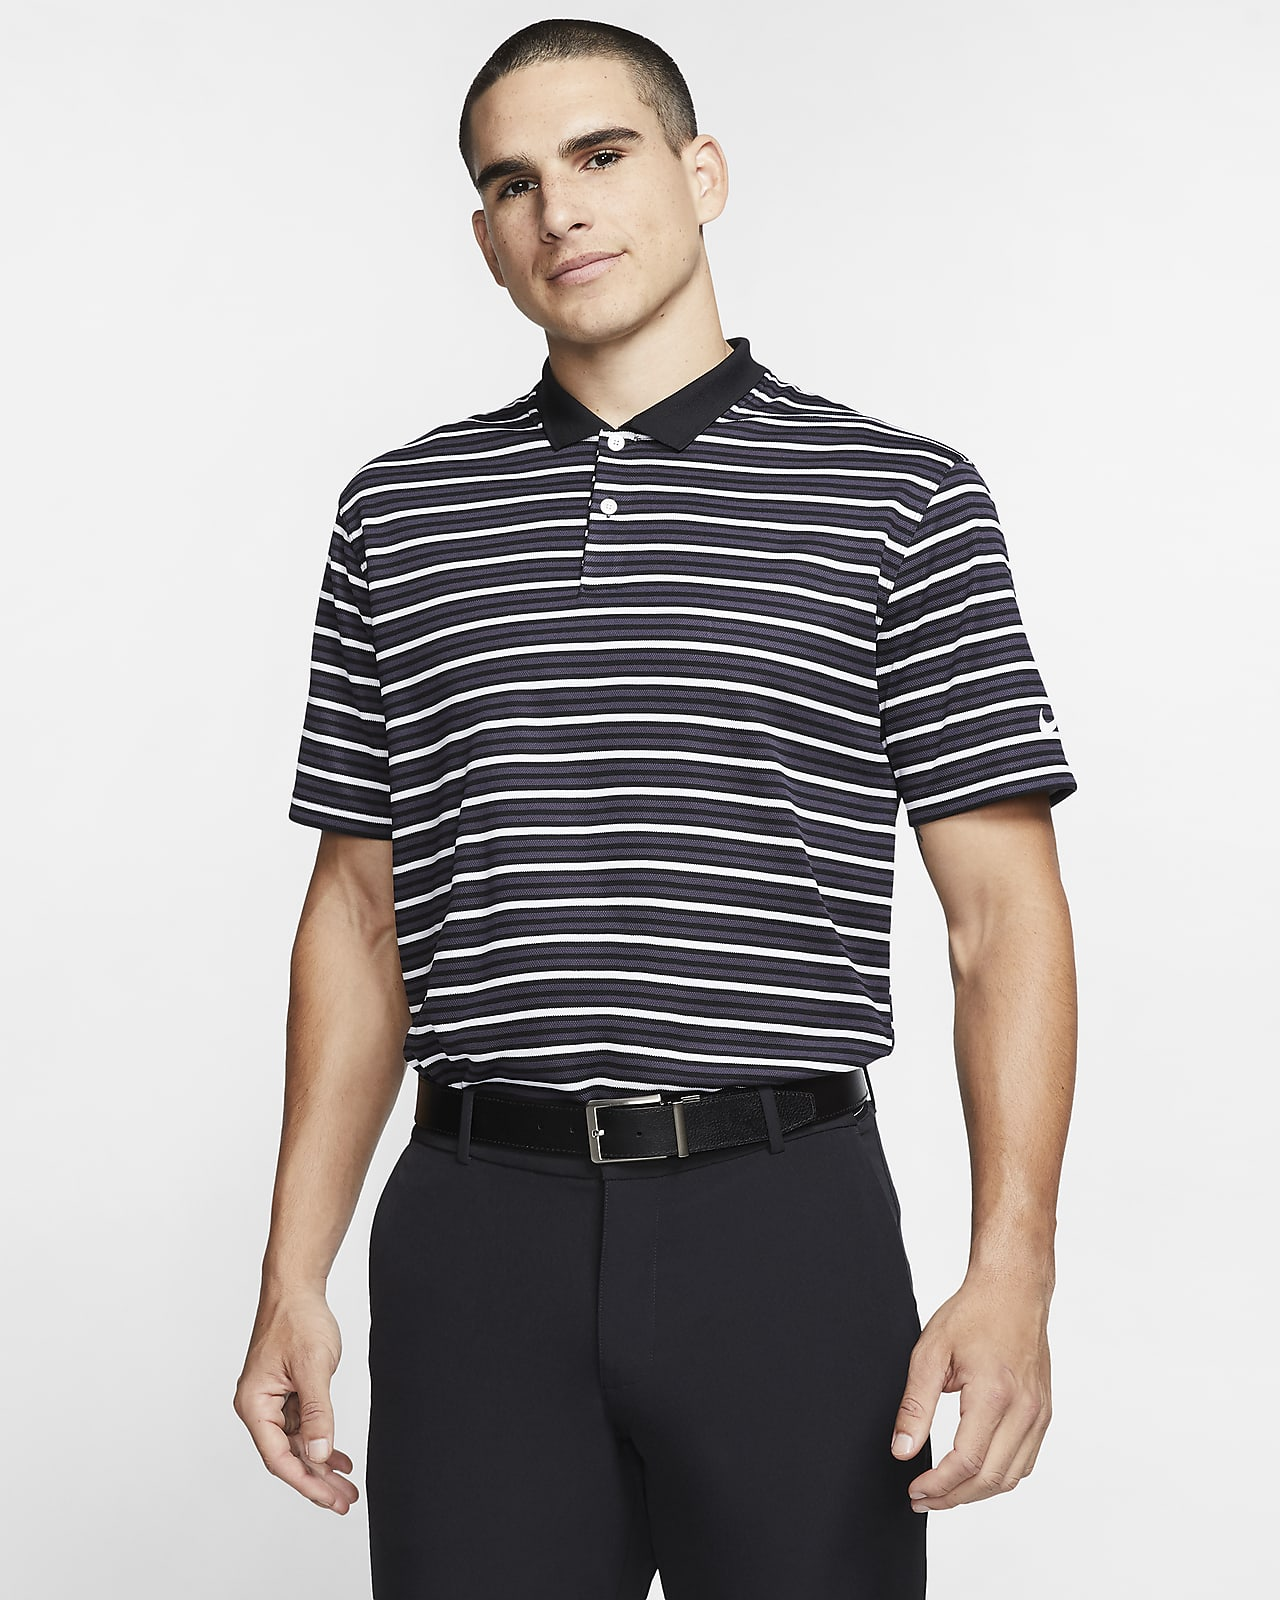 Nike Dri-FIT Victory Men's Striped Golf Polo